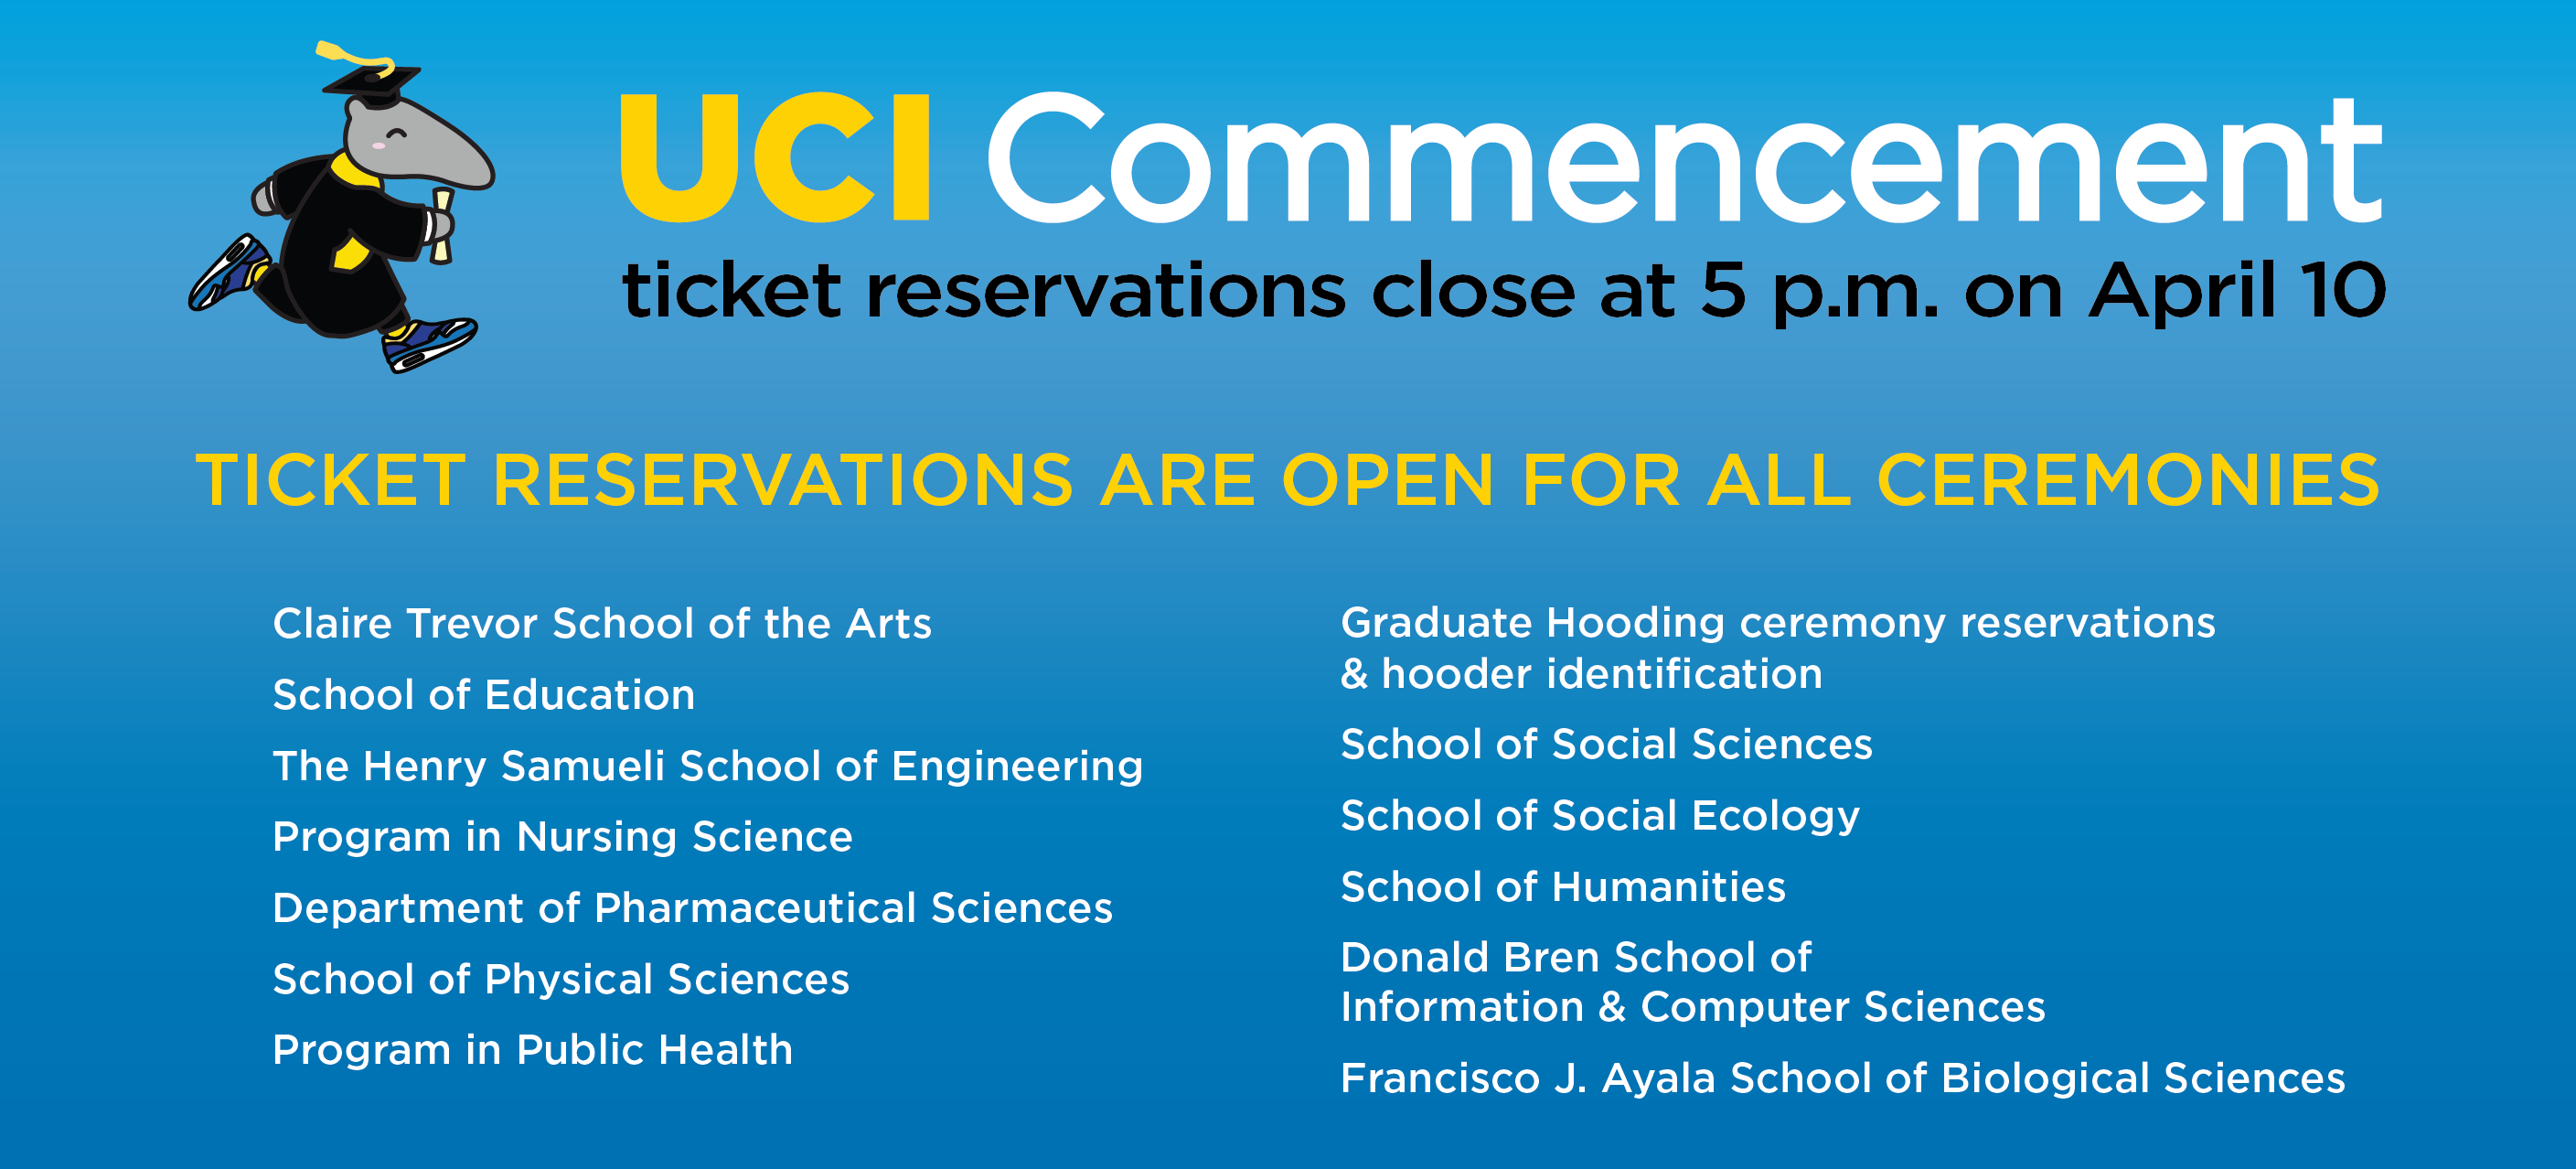 Commencement ticket reservations are available online